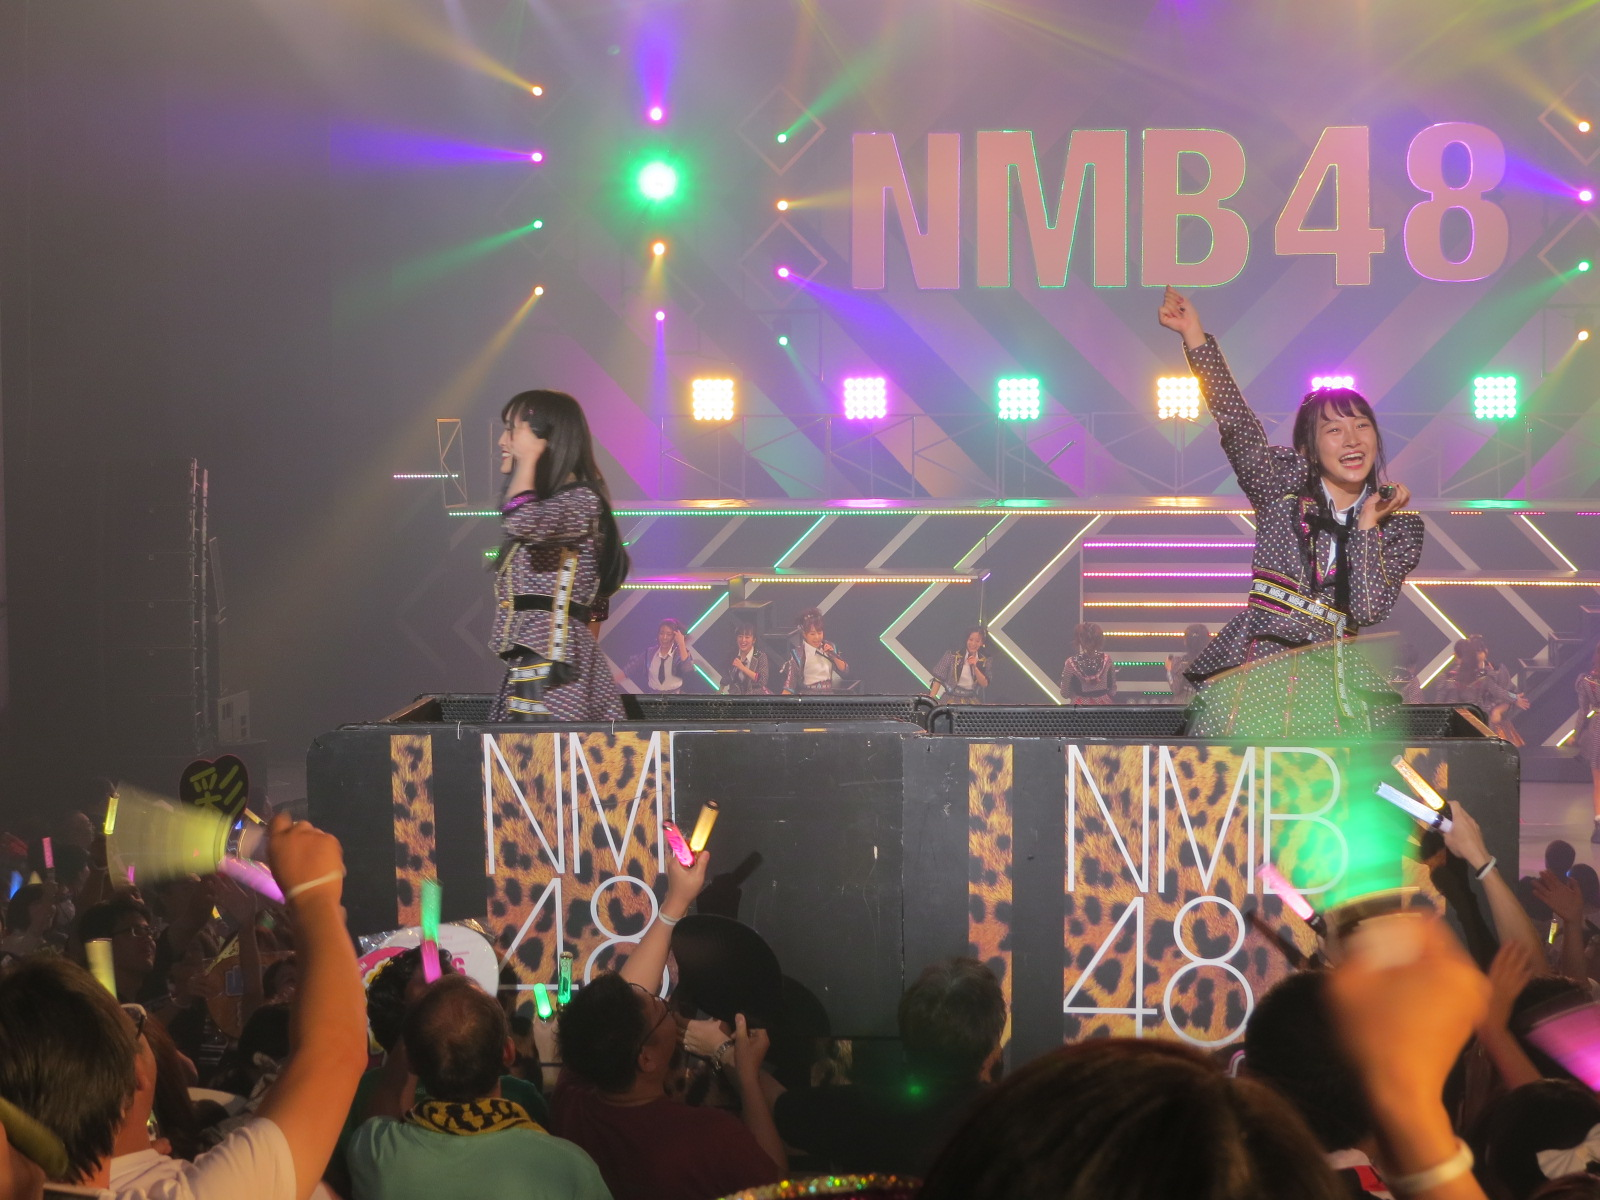 NMB48 LIVE TOUR 2018 in Summer・石川公演の画像-012